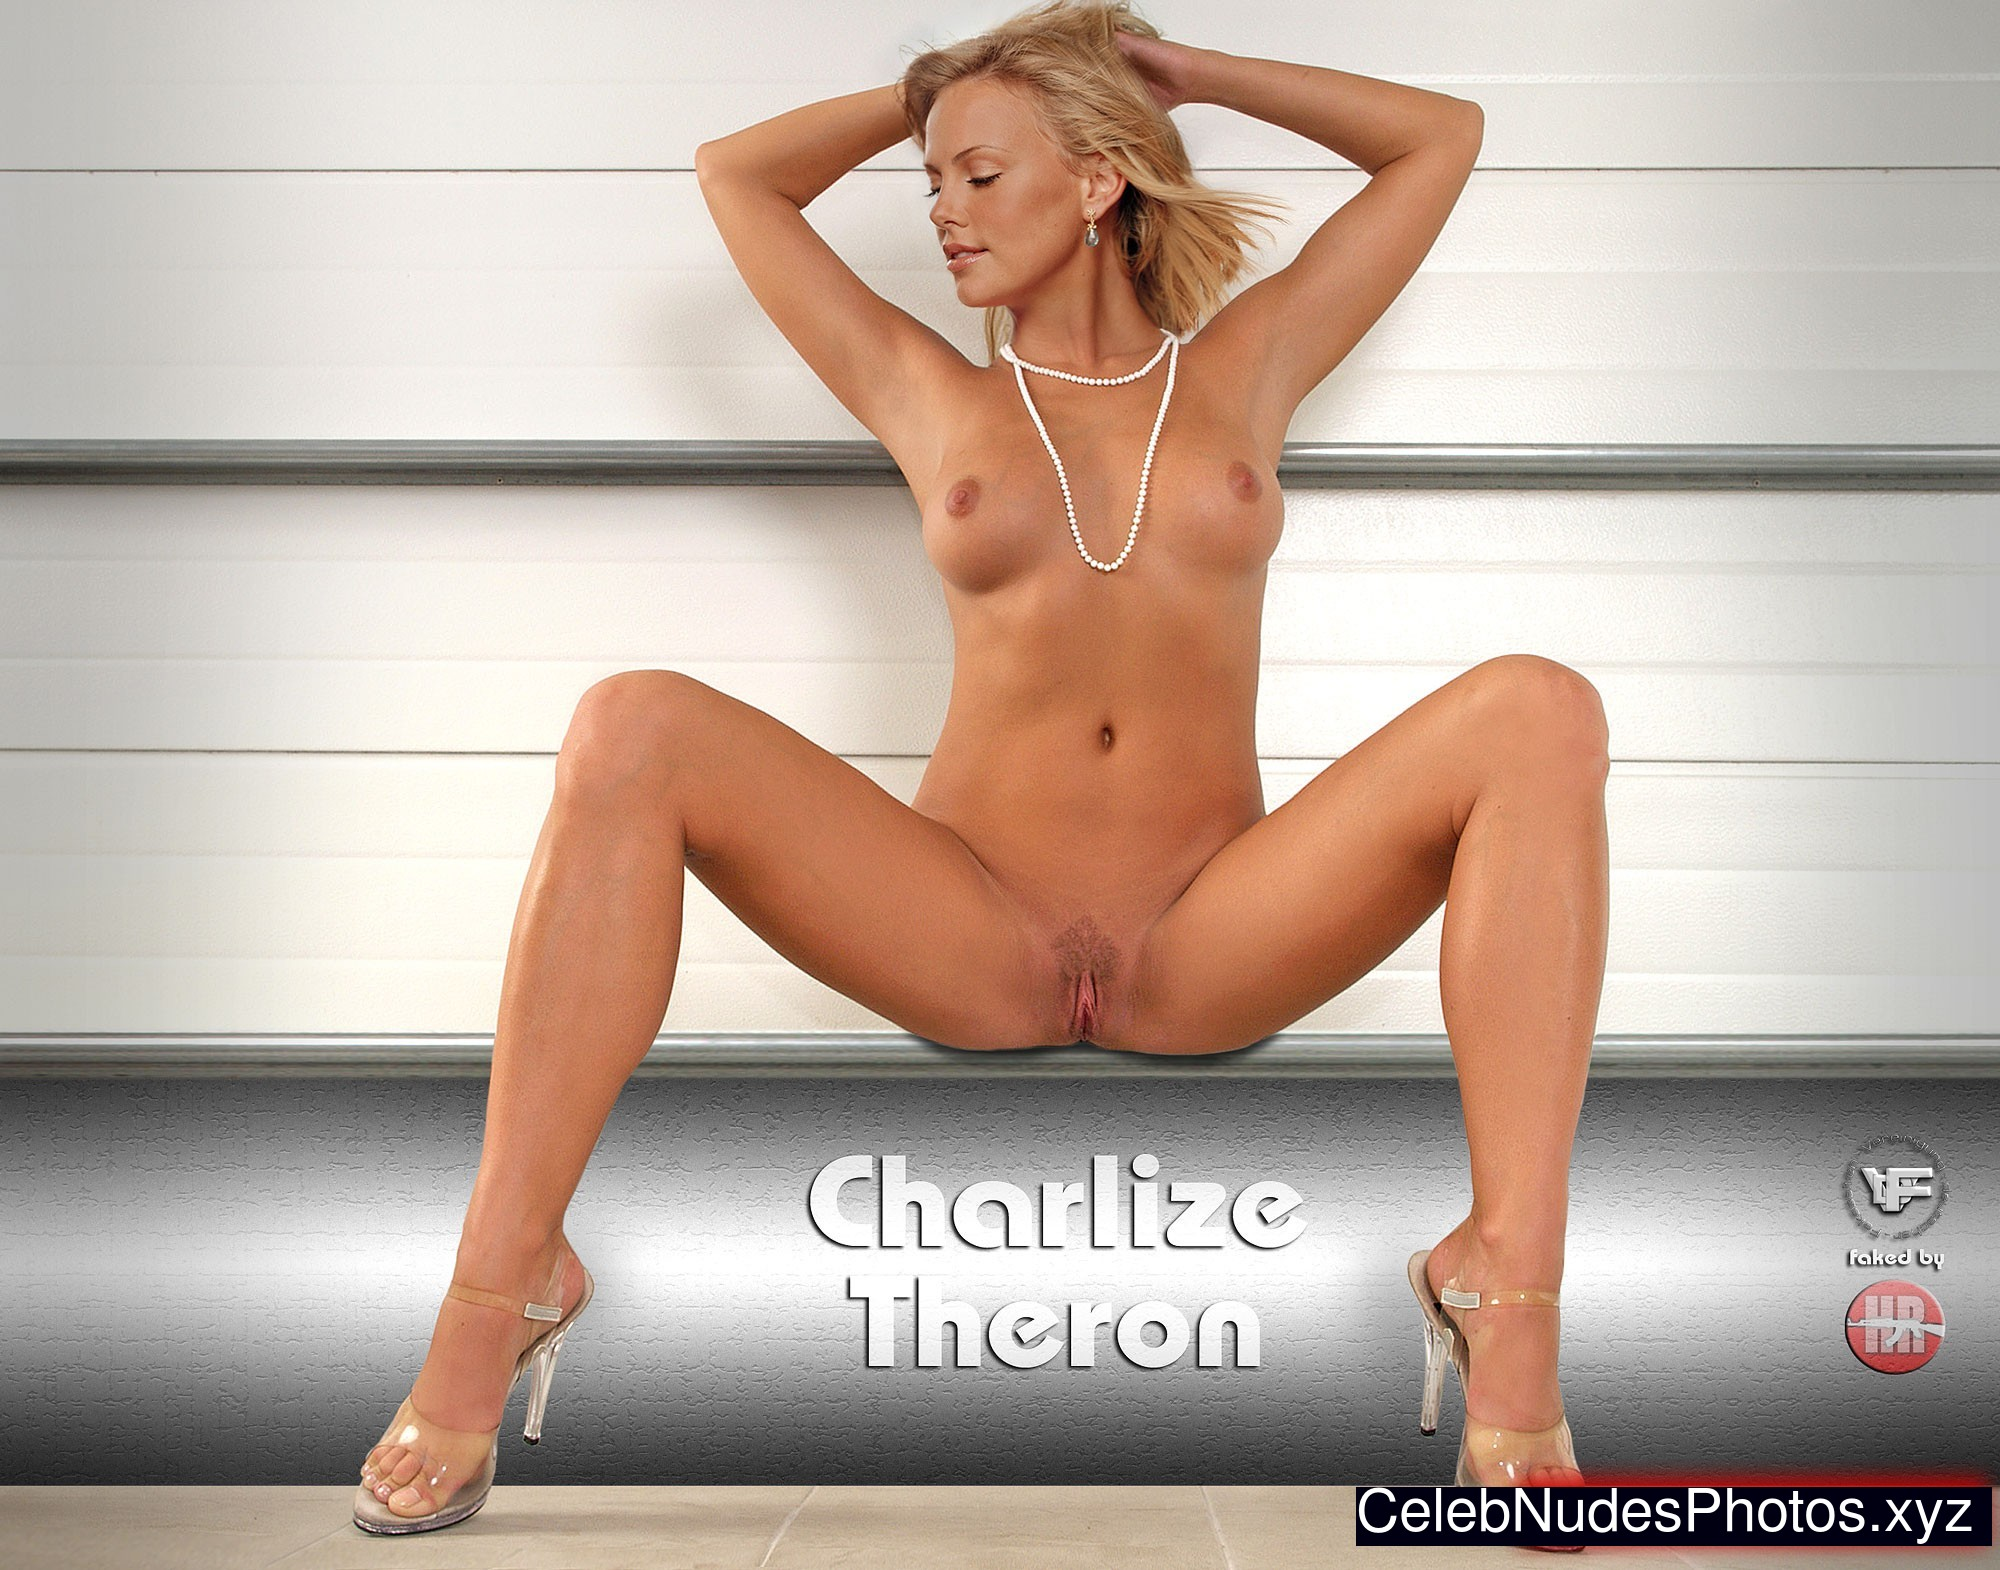 charlize theron naked with feet